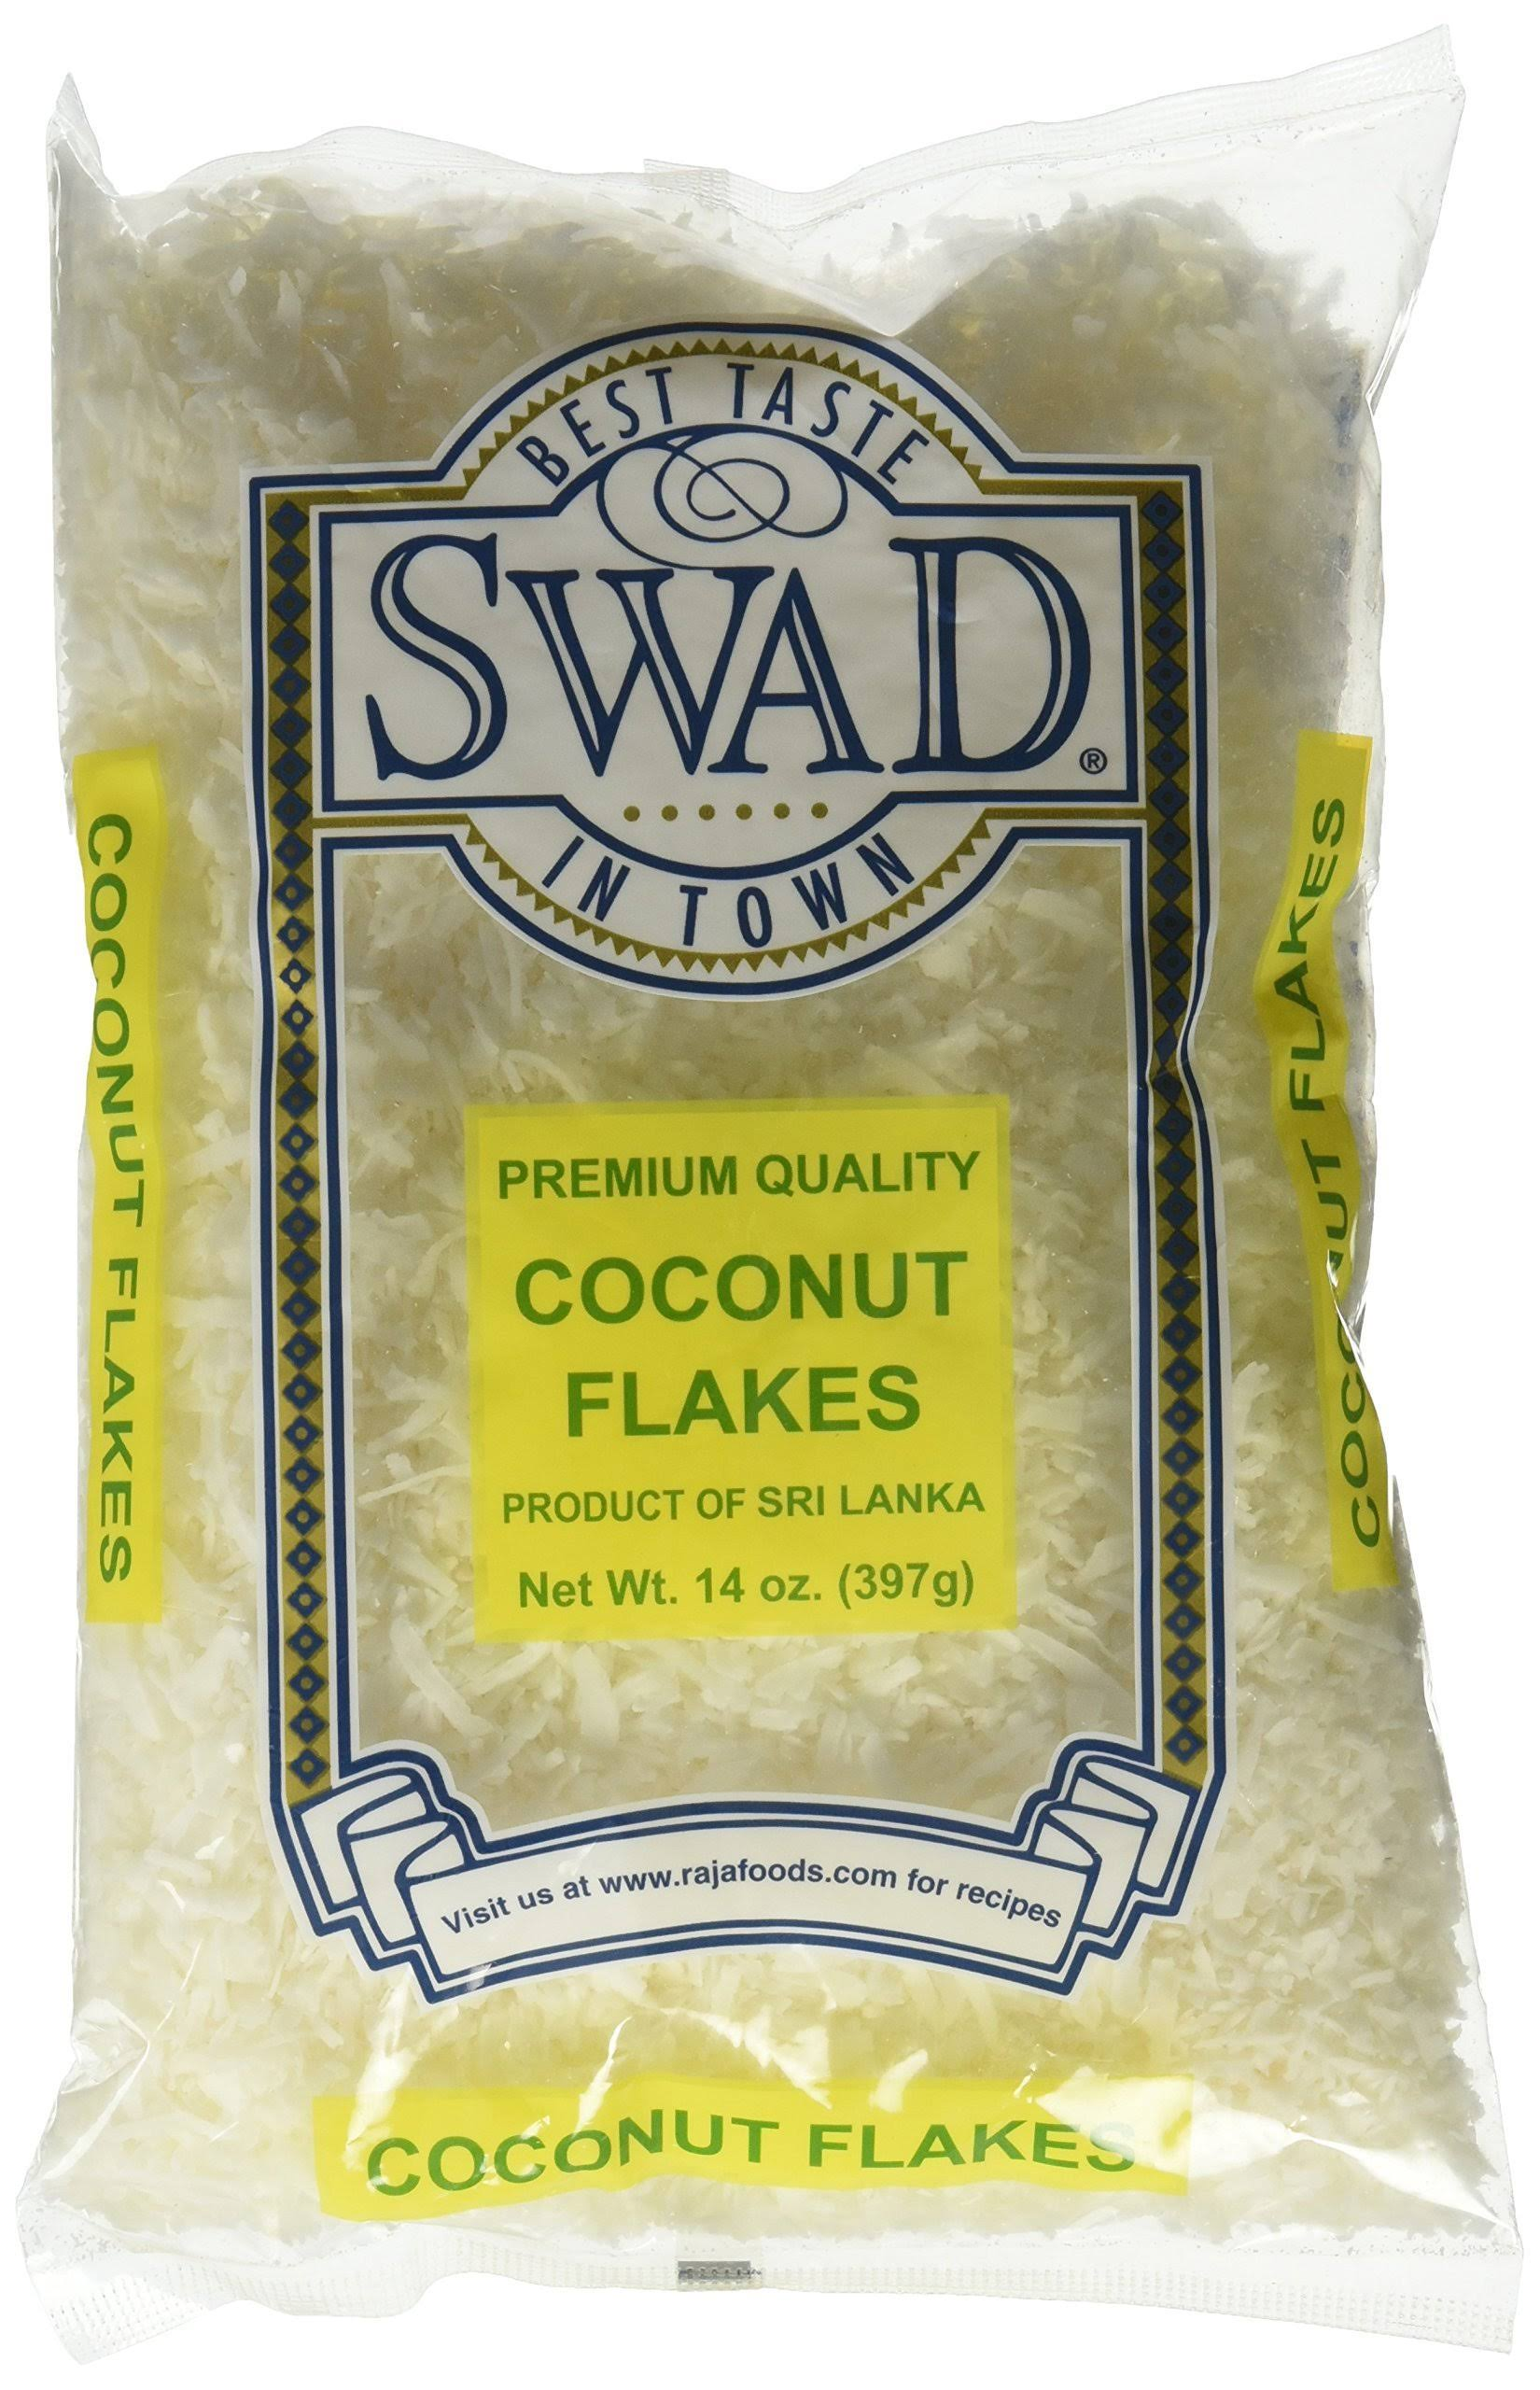 Swad Coconut Flakes